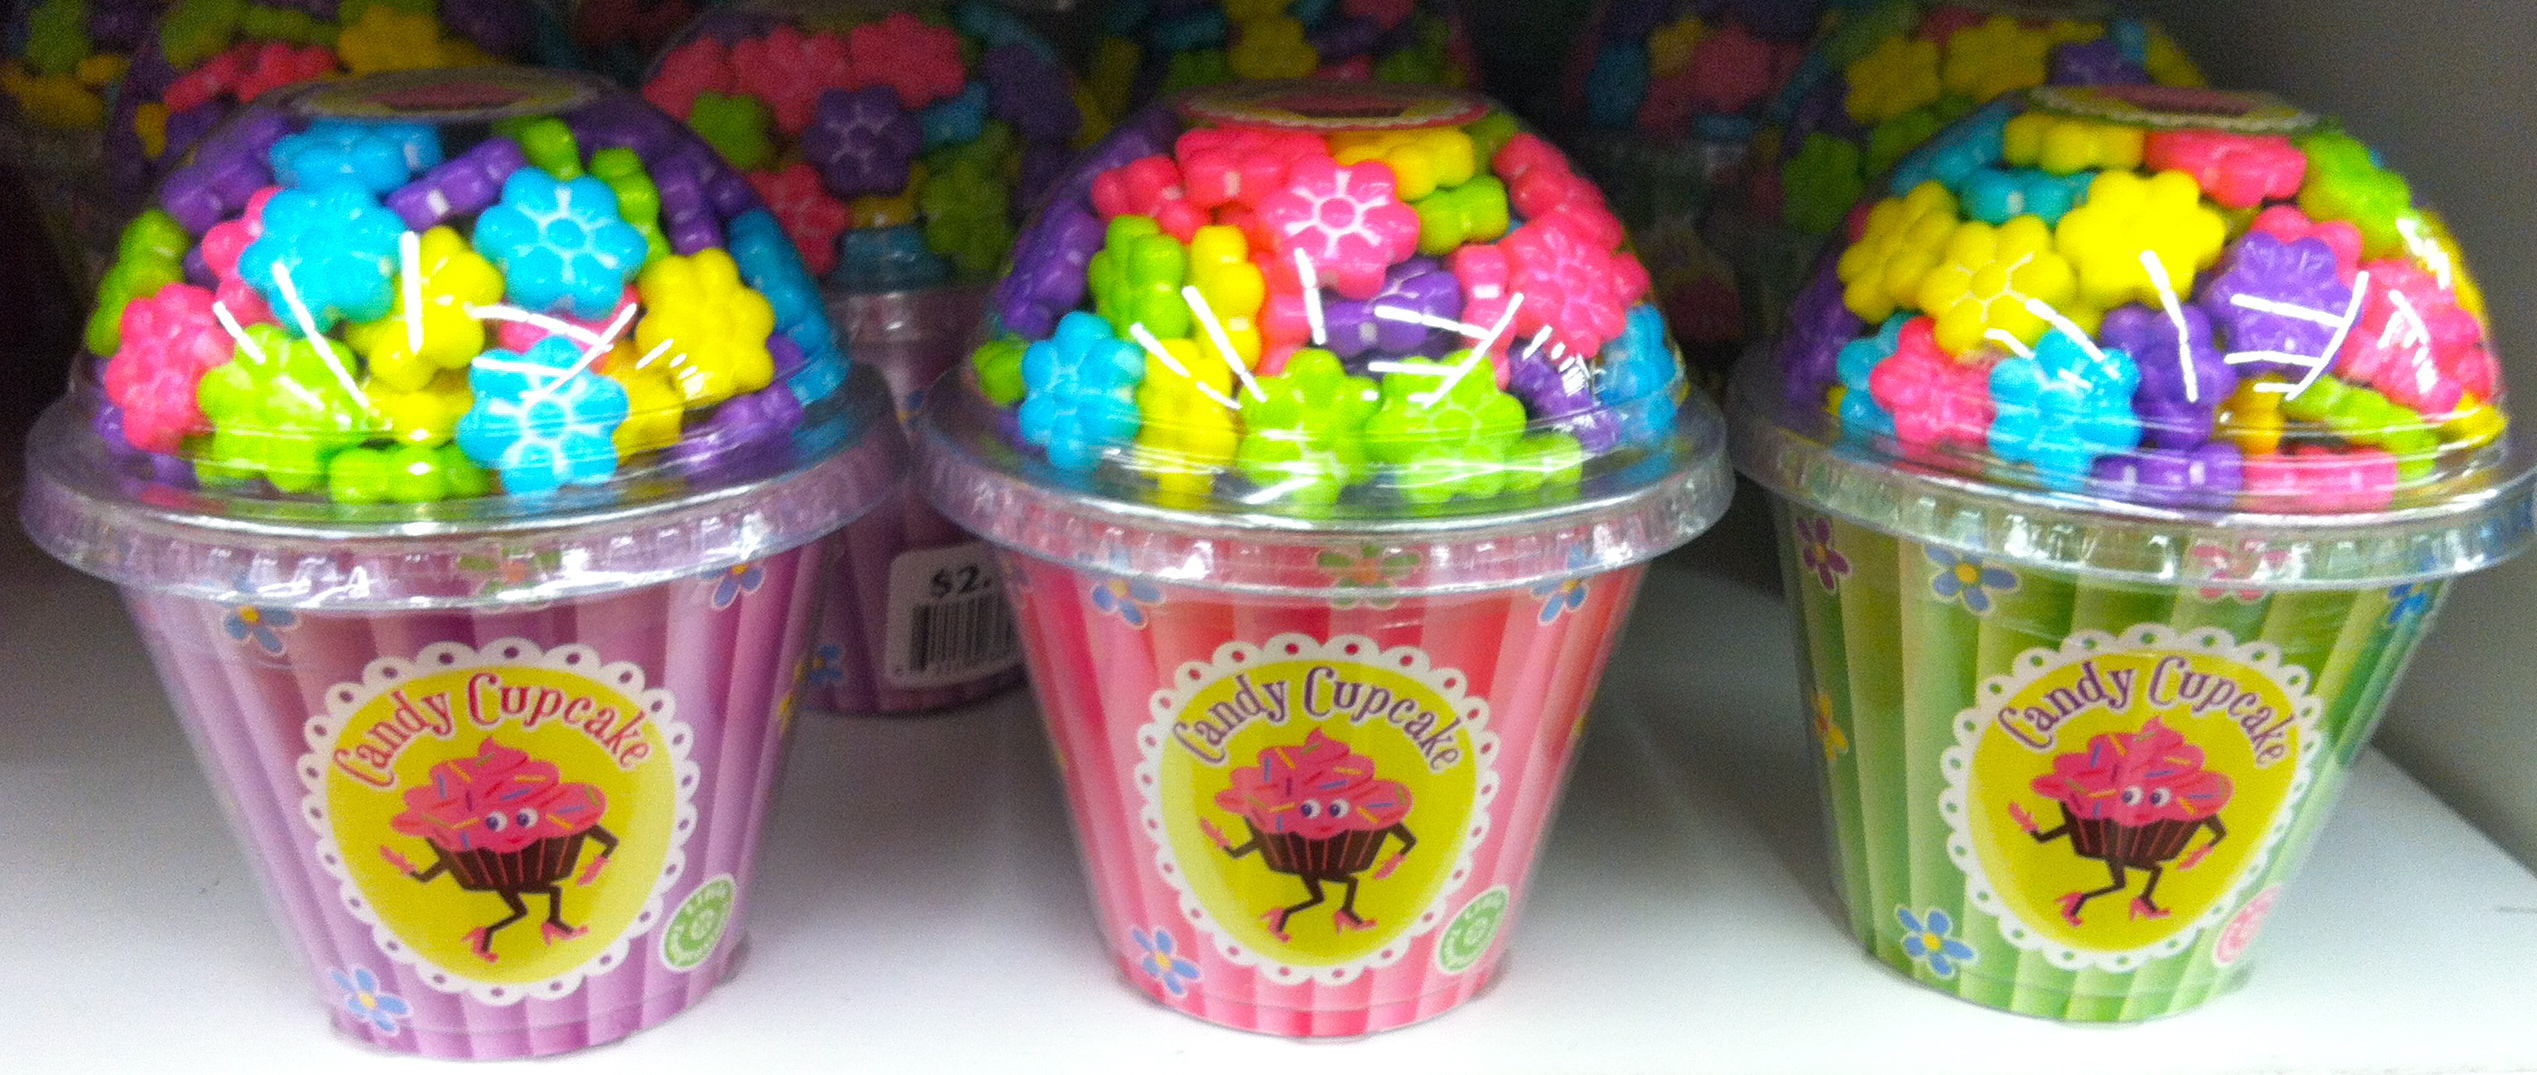 Bed bath and beyond cupcake easter candy all things cupcake negle Images